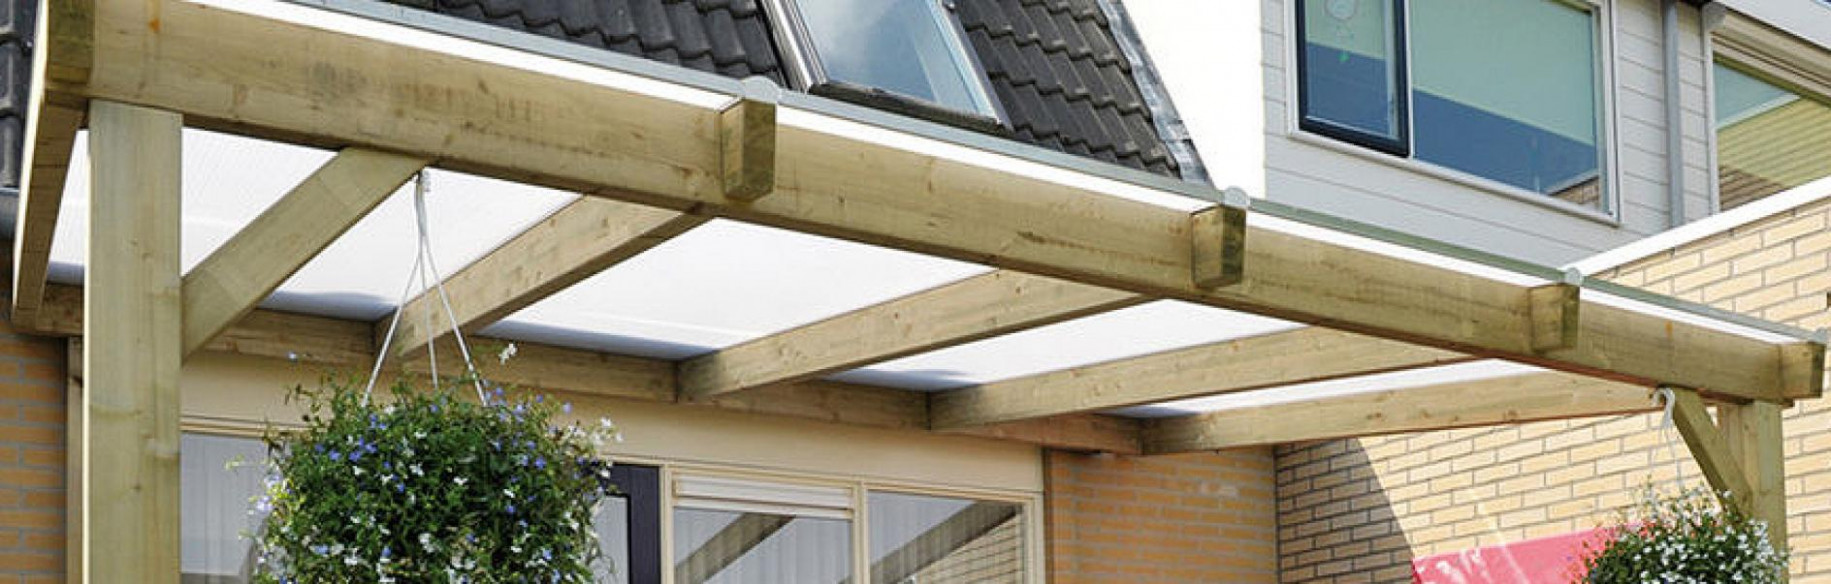 How To Build A Veranda Carport Ideas Ireland